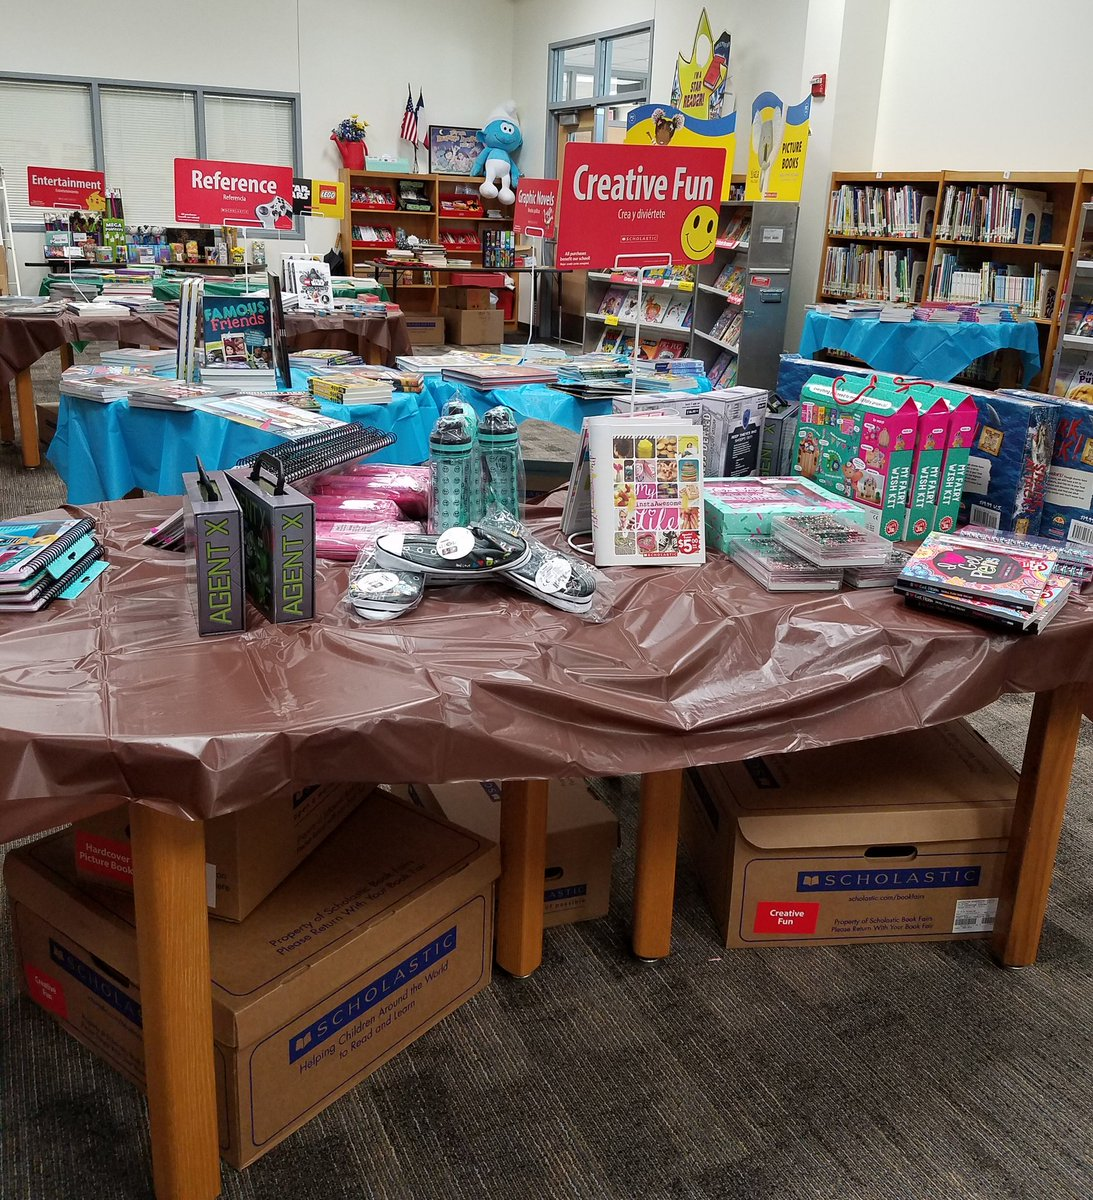 LRE is ready for the Book Fair! Thank you, Mrs. McCurdy &amp; 5th graders for your support! @MAnderson_iLead @LRELonghorns #BookFair #BookWorm <br>http://pic.twitter.com/9QUSAxH4EP